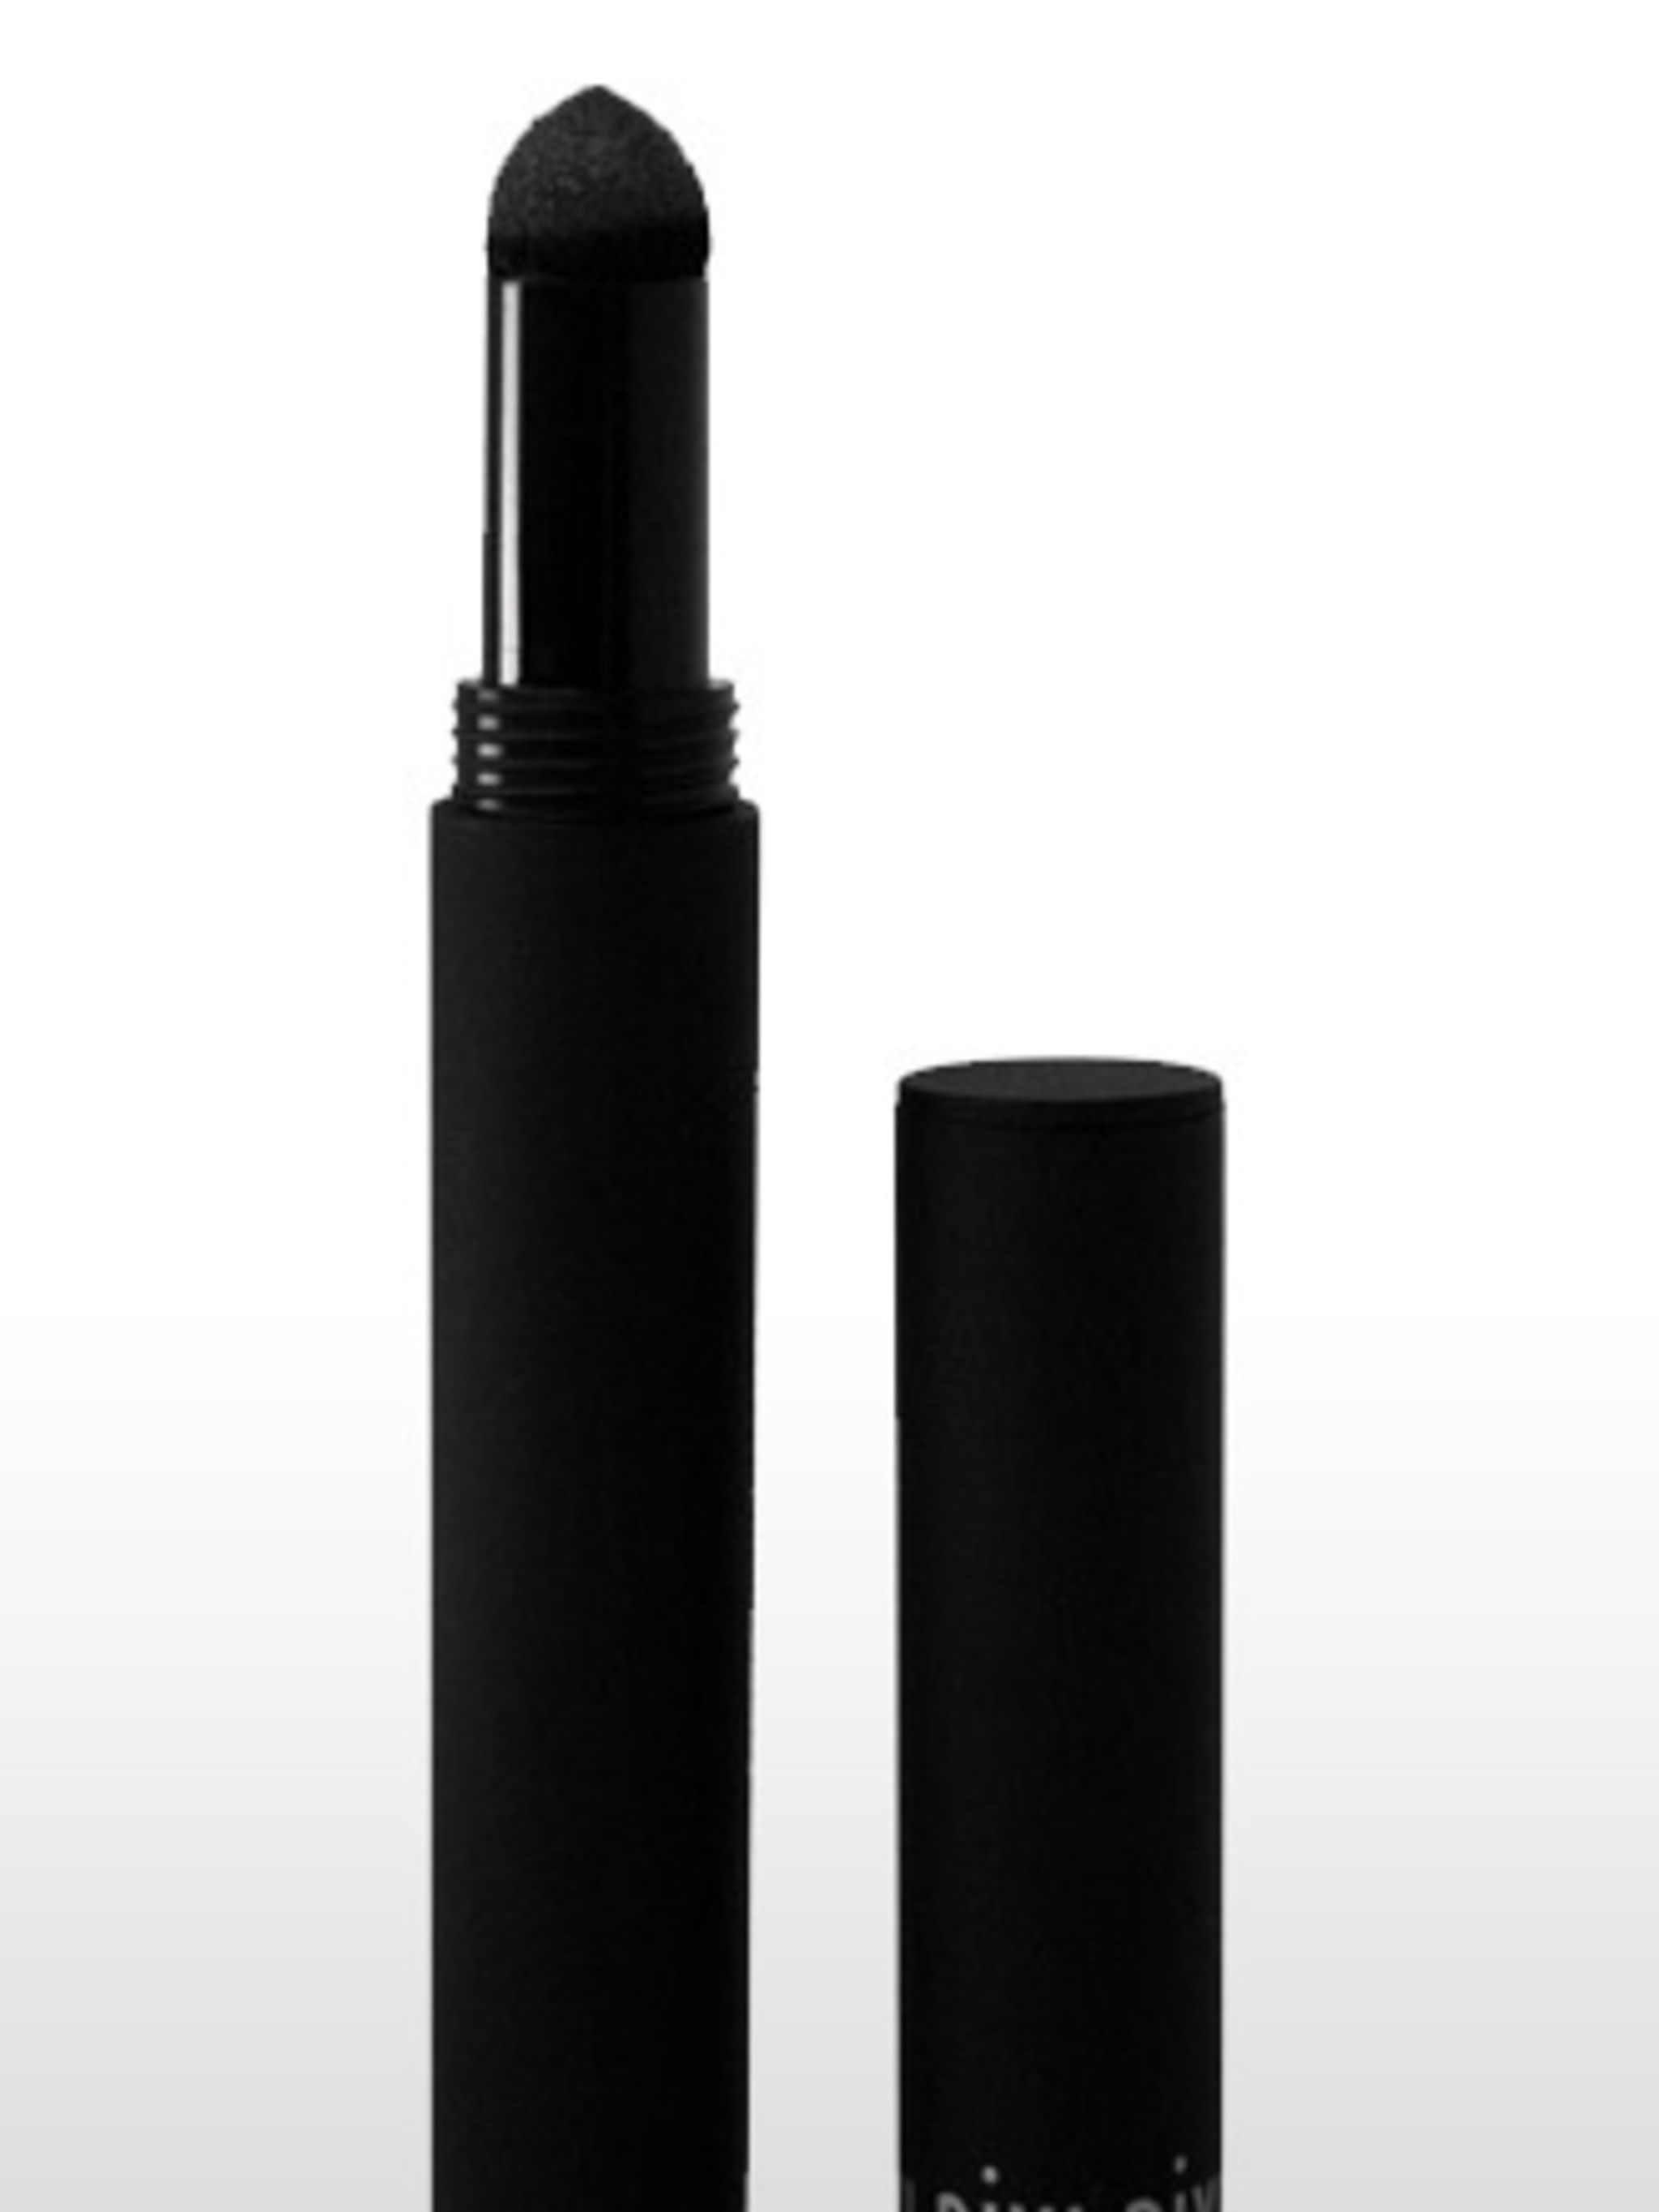 <p>Ramp up kohl rimmed eyes and go for a smoky look with this wand. Use under the eye and on the lid smudging the shadow up and out for a flattering cat's eye shape.</p><p>Pixi Smokey Eye Wand, £14</p>